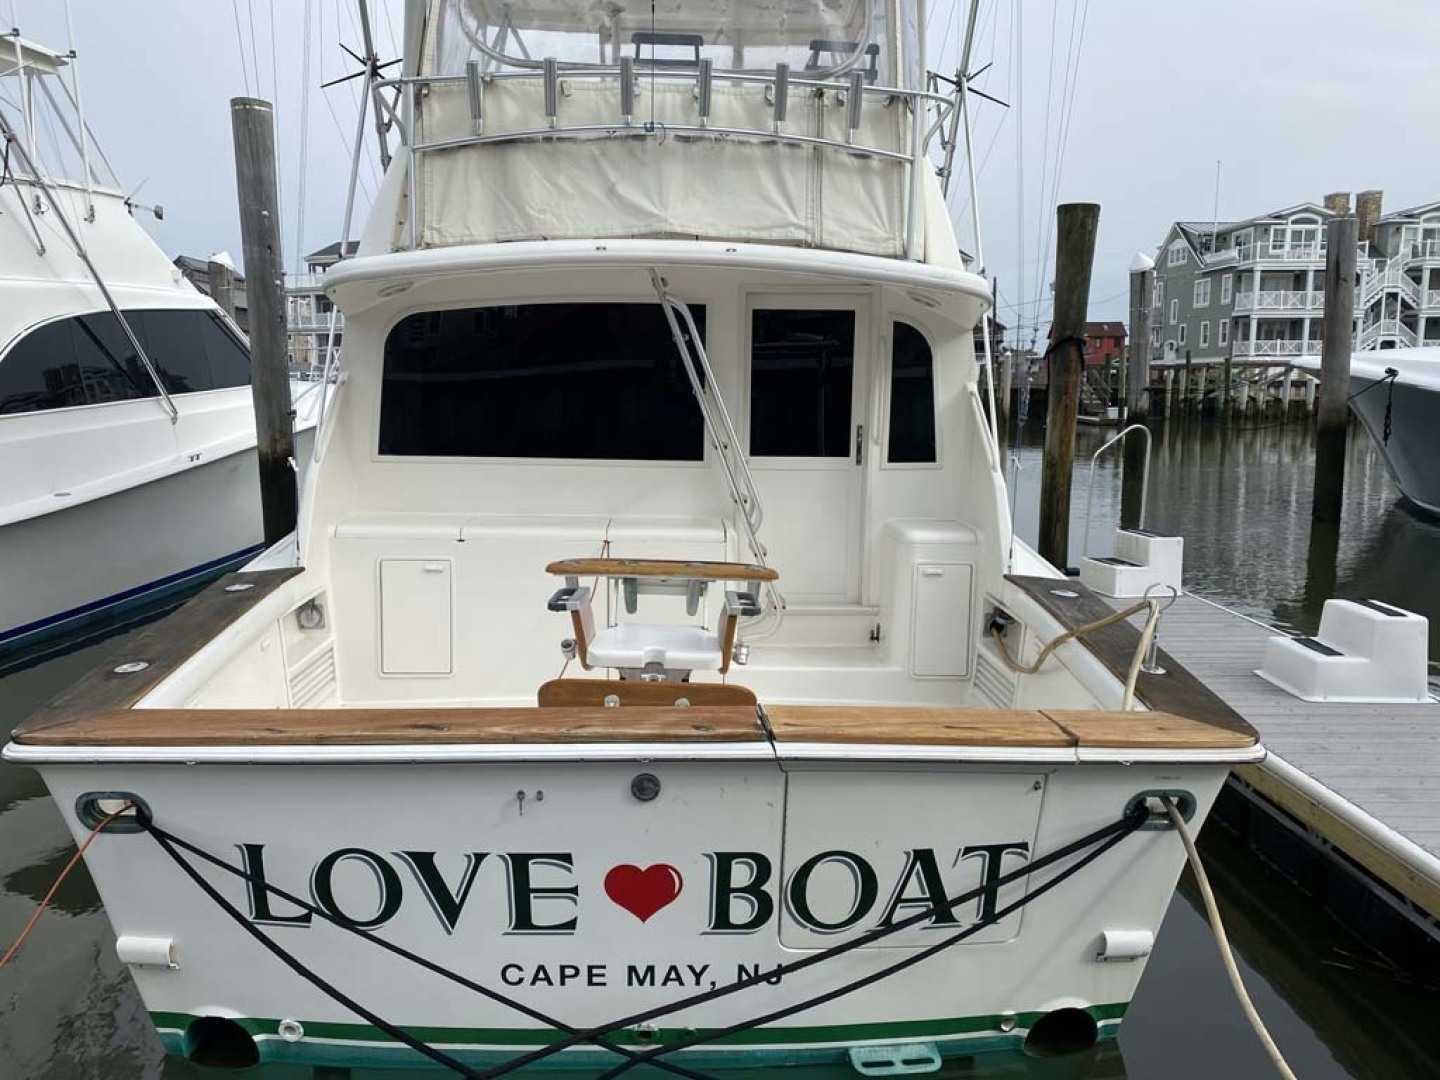 Ocean Yachts-Super Sport 1998-Love Boat Cape May-New Jersey-United States-Stern View-1624931 | Thumbnail